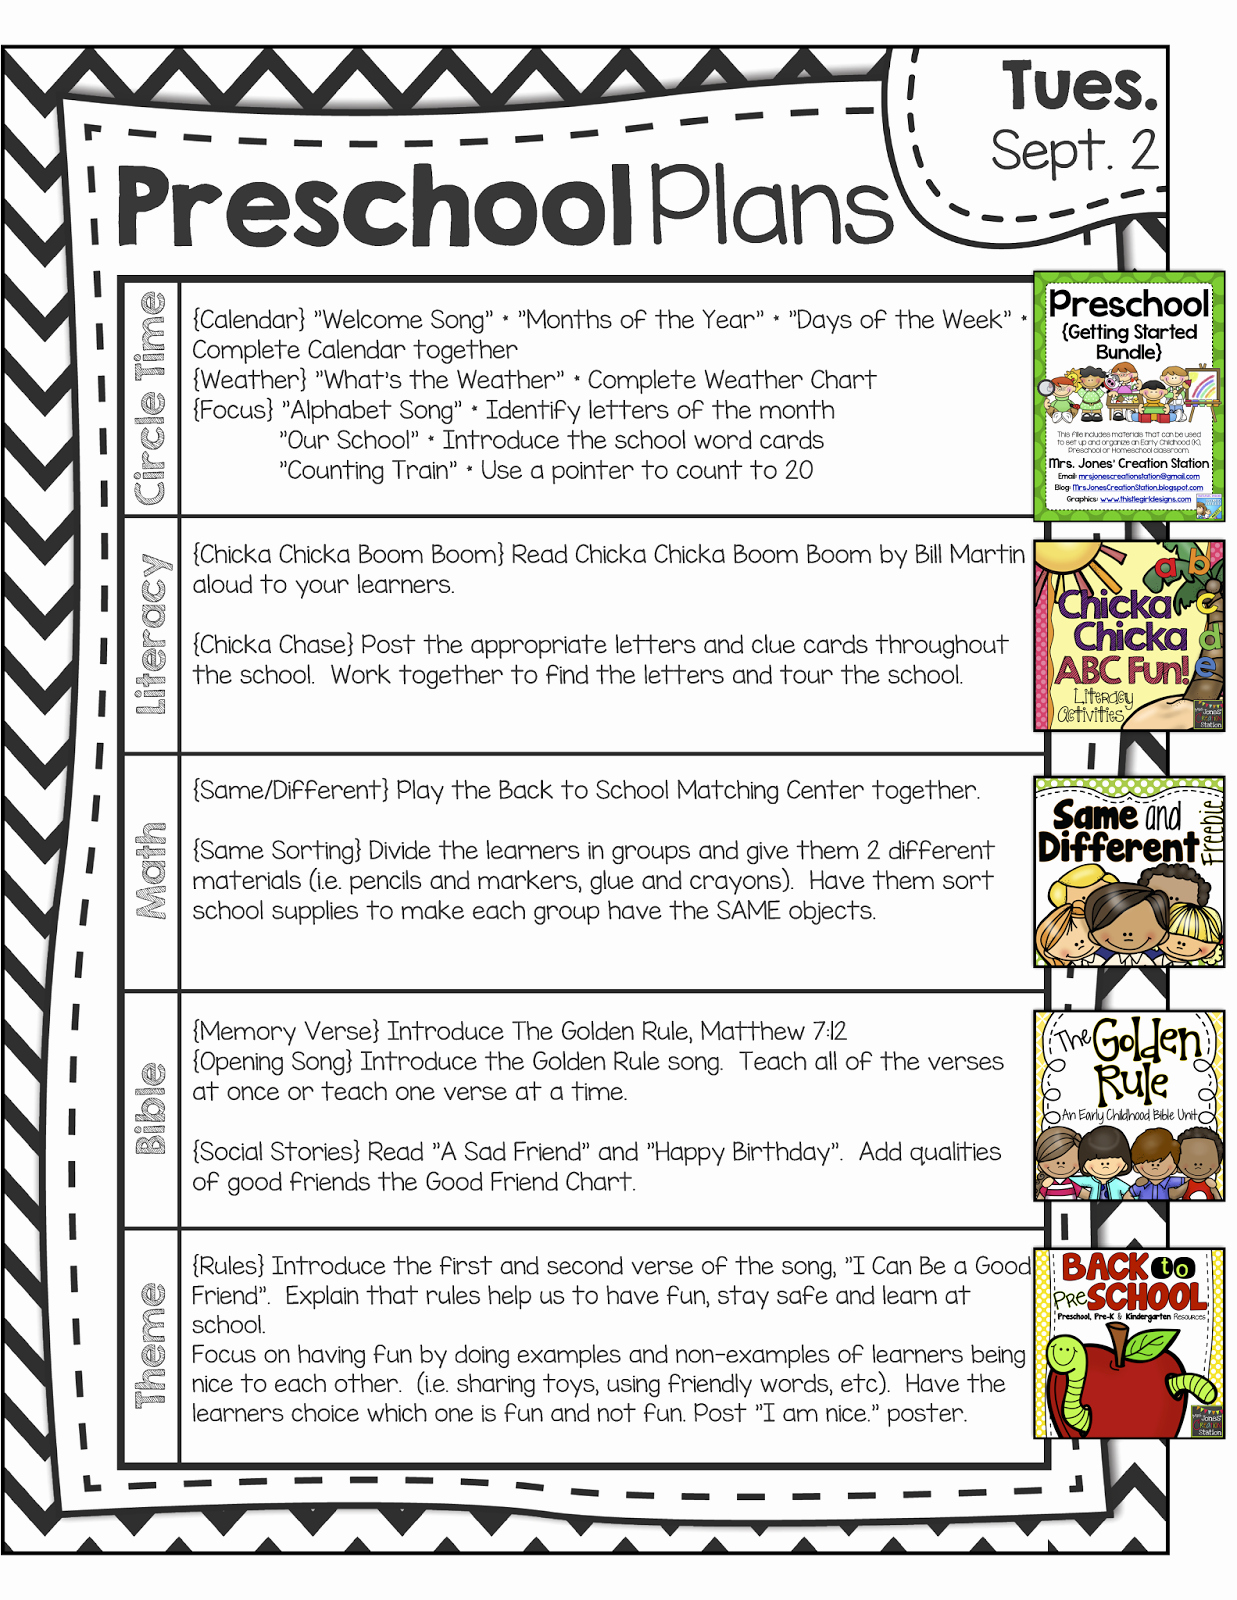 Prek Lesson Plan Template New Windows 10 Product Activation Keys All Versions